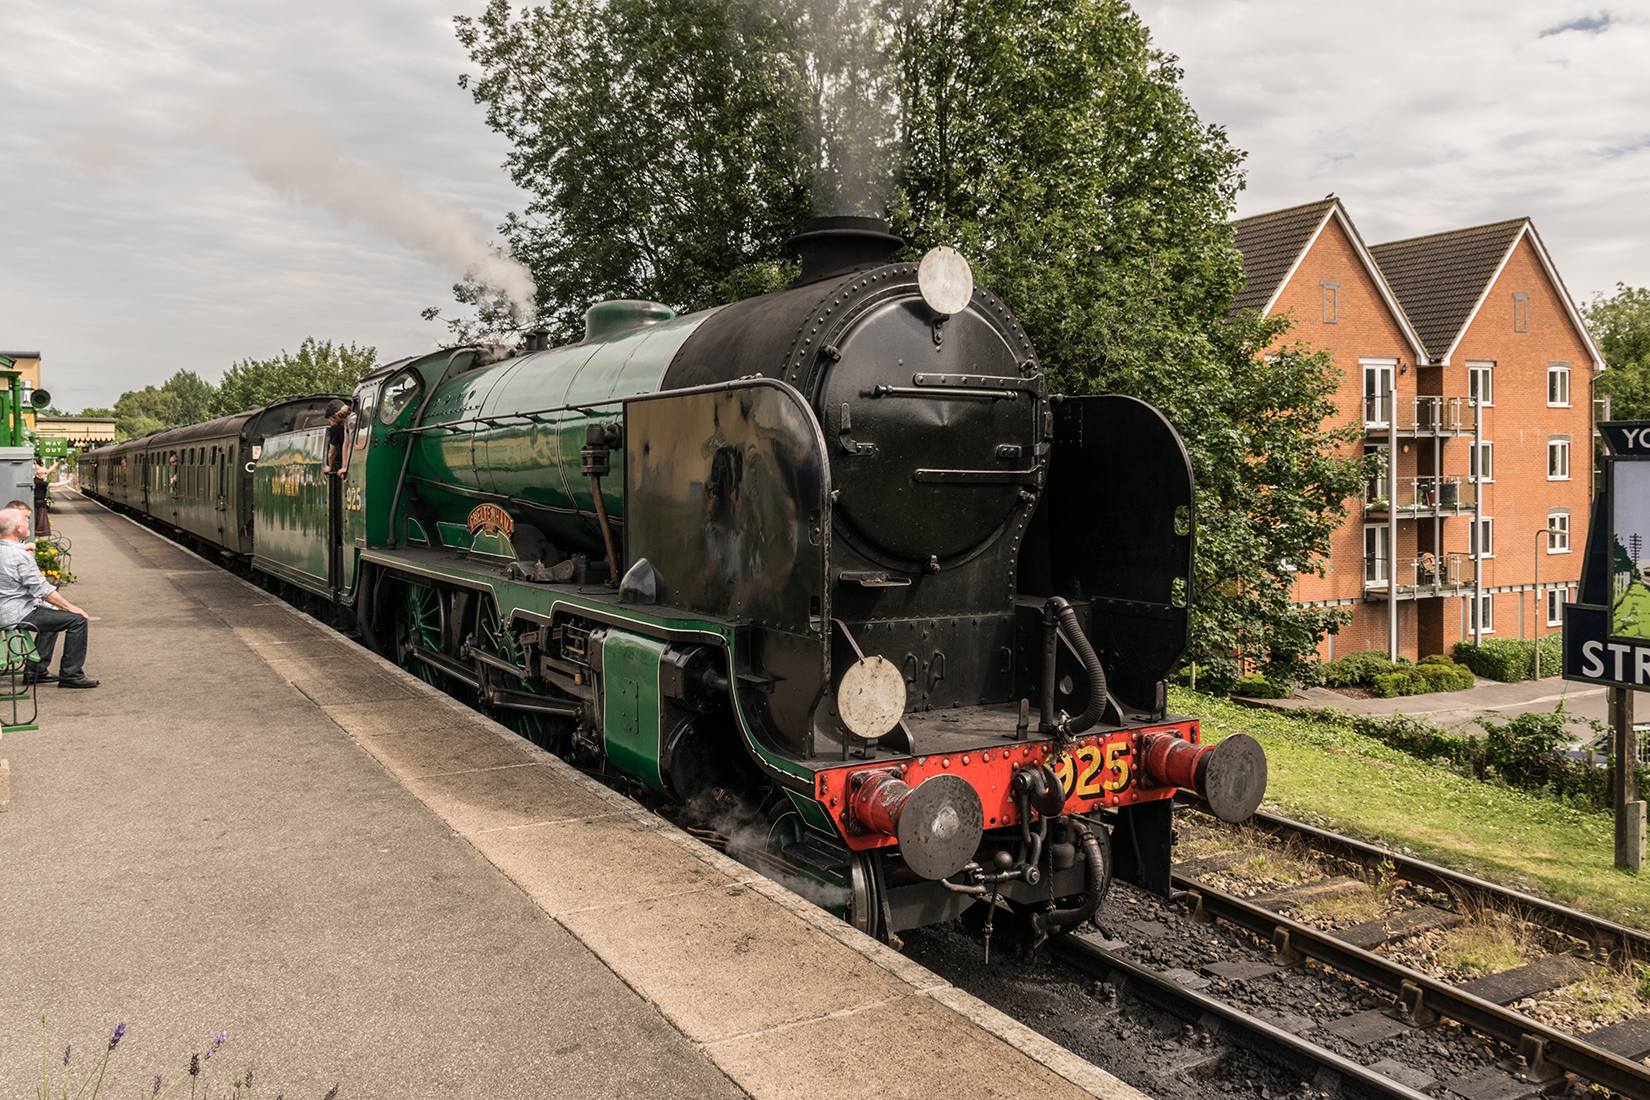 850 'Lord Nelson' leaves Alton with the 12:50 'down' service to Alresford